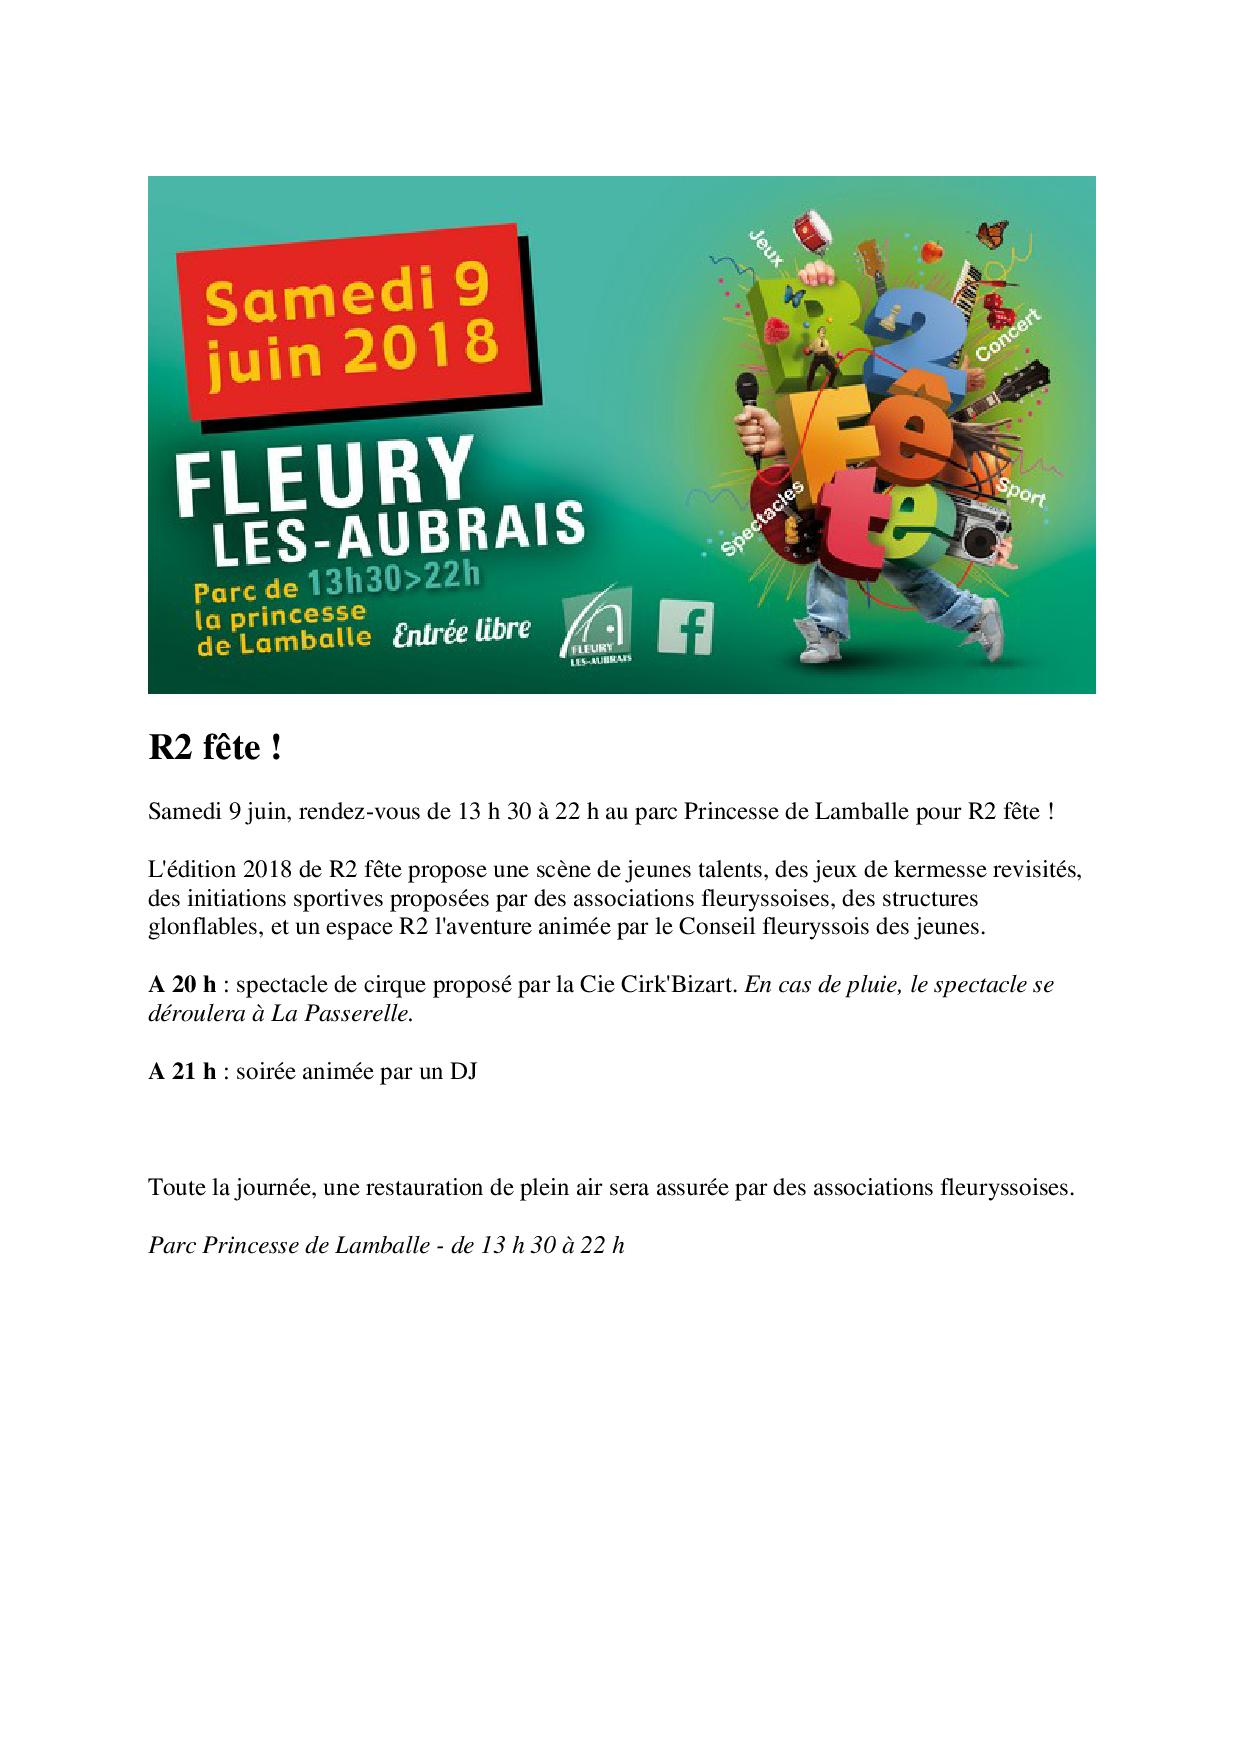 Document1 R2Fête 2018 (09.06.2018).jpg